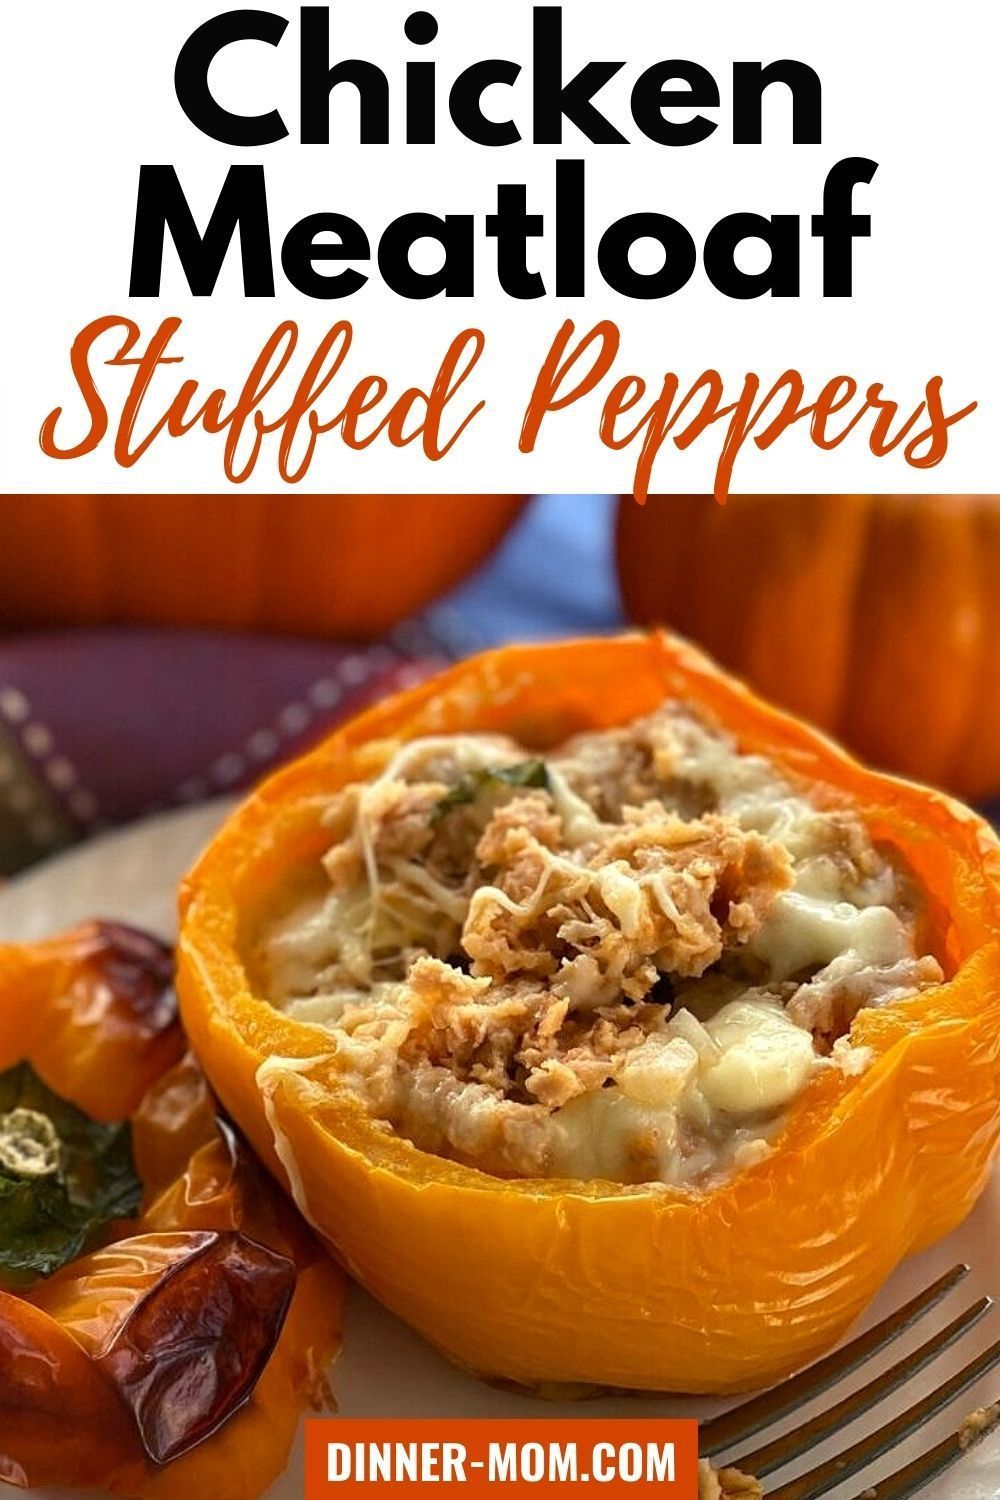 Healthy Stuffed Peppers With Chicken Meatloaf In 2021 Stuffed Peppers Stuffed Peppers Healthy Low Carb Chicken Casserole